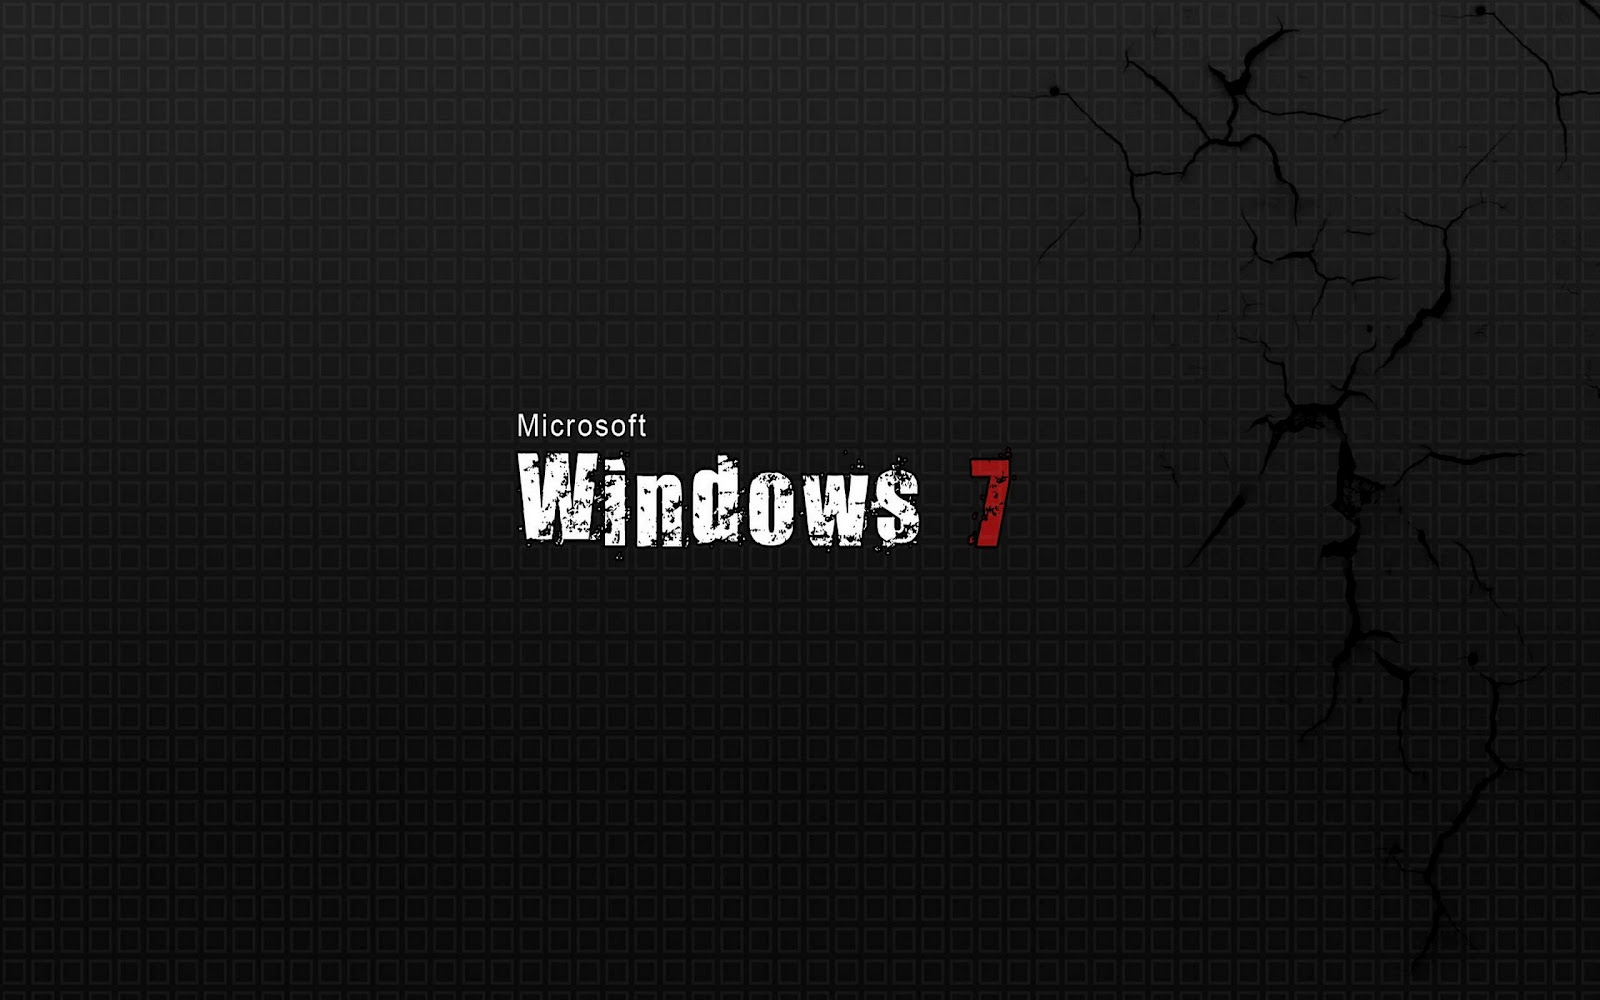 windows 7 black wallpaper background | hd wallpaper background